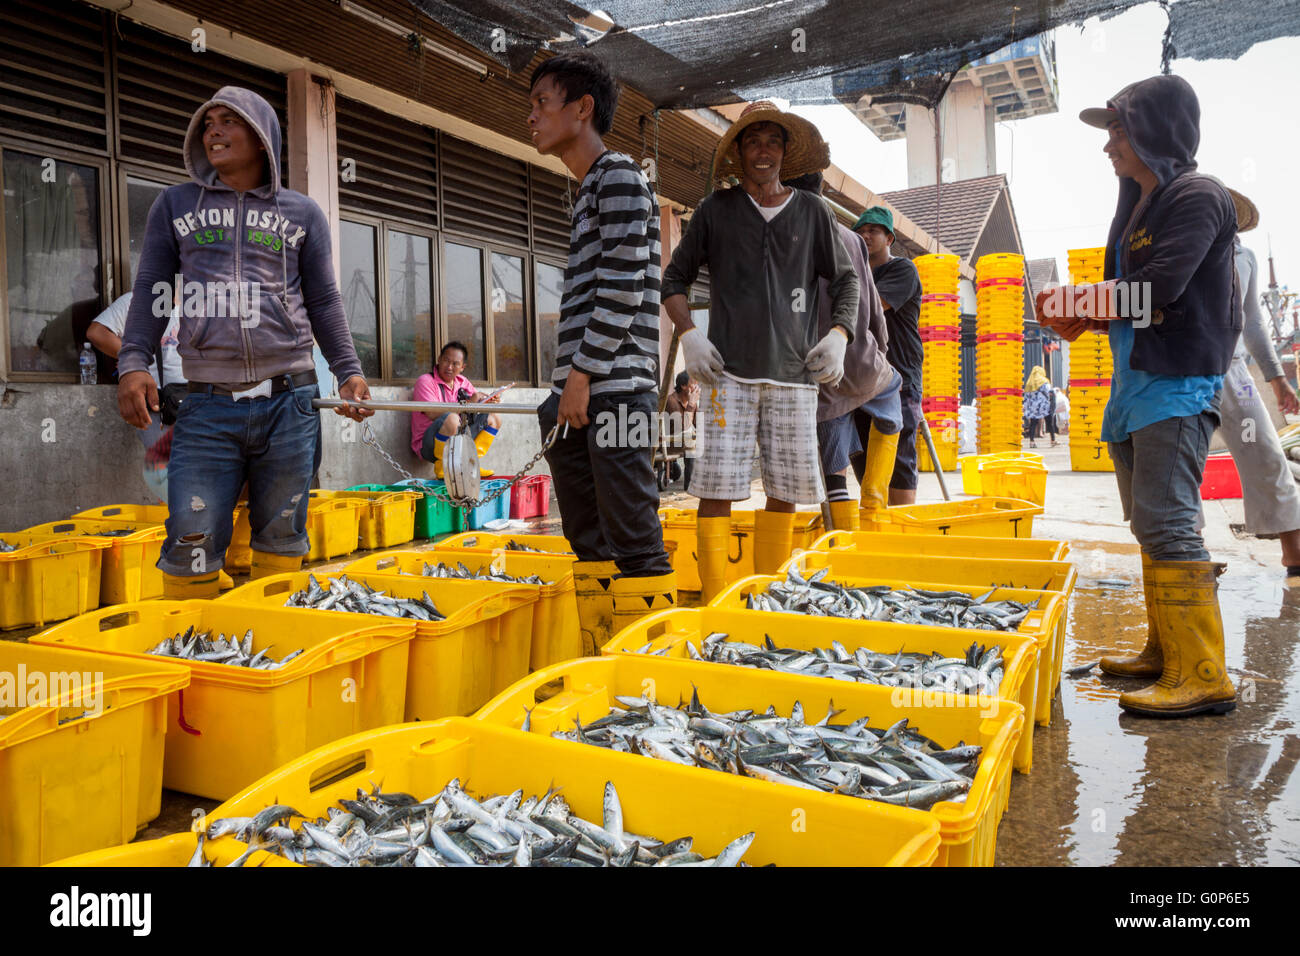 Workers on the dock handling fish from the South China Sea, Kota Kinabalu, Borneo Malaysia - Stock Image